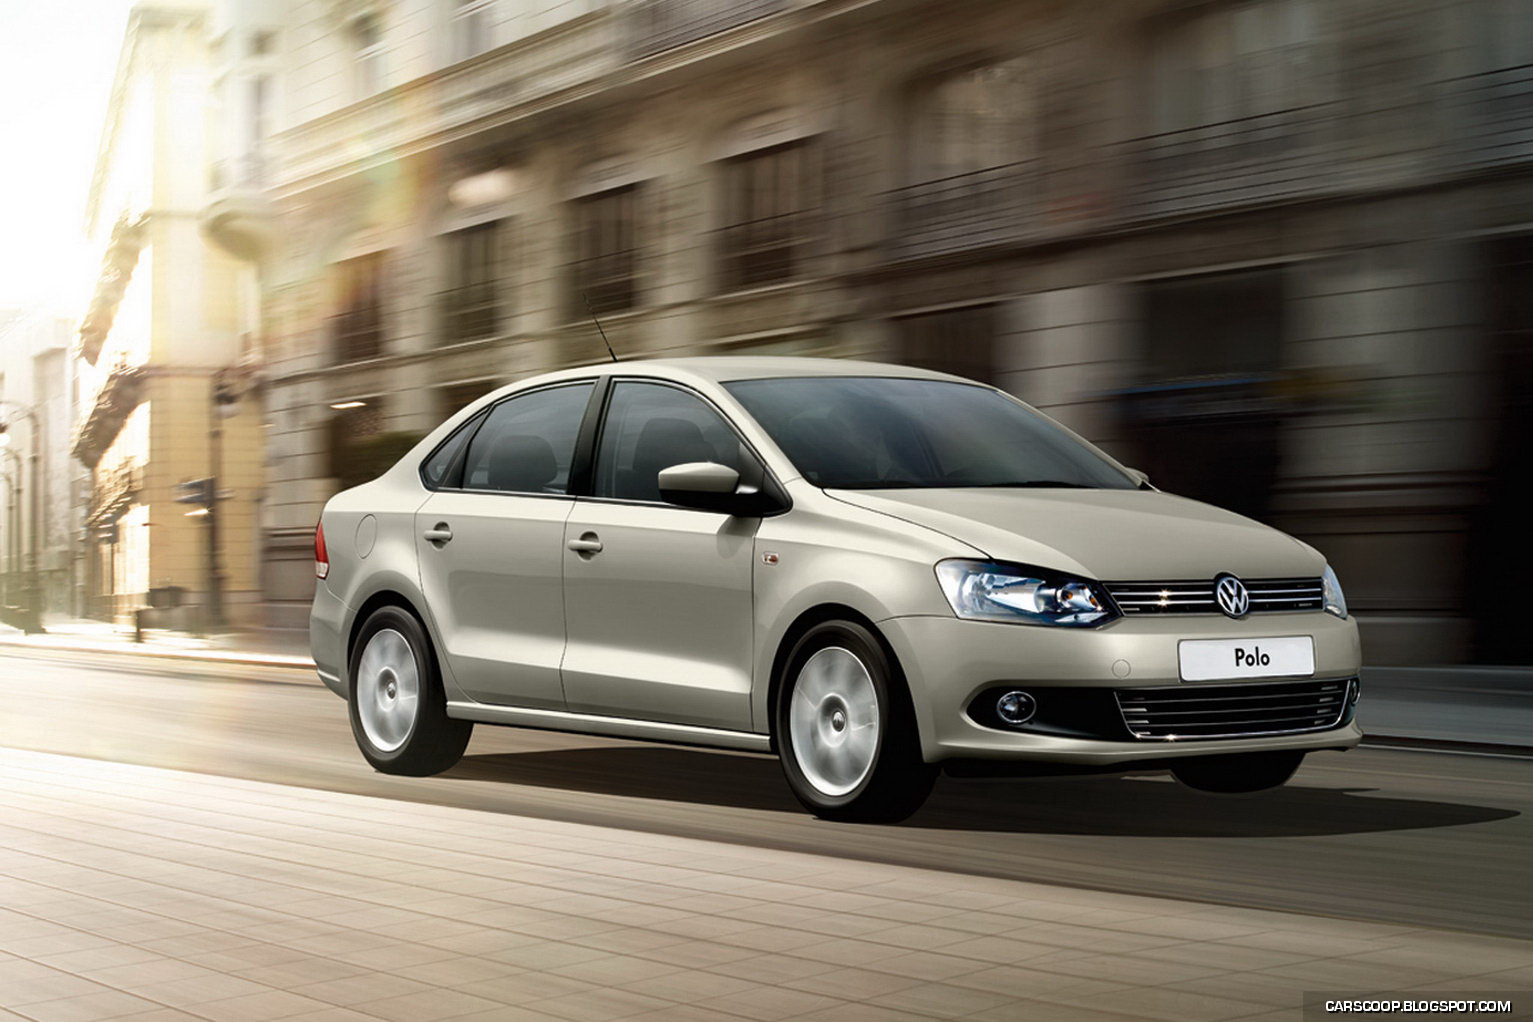 2011 Vw Polo Sedan New Photo Gallery Plus Info On India Market Version That That Resurrects